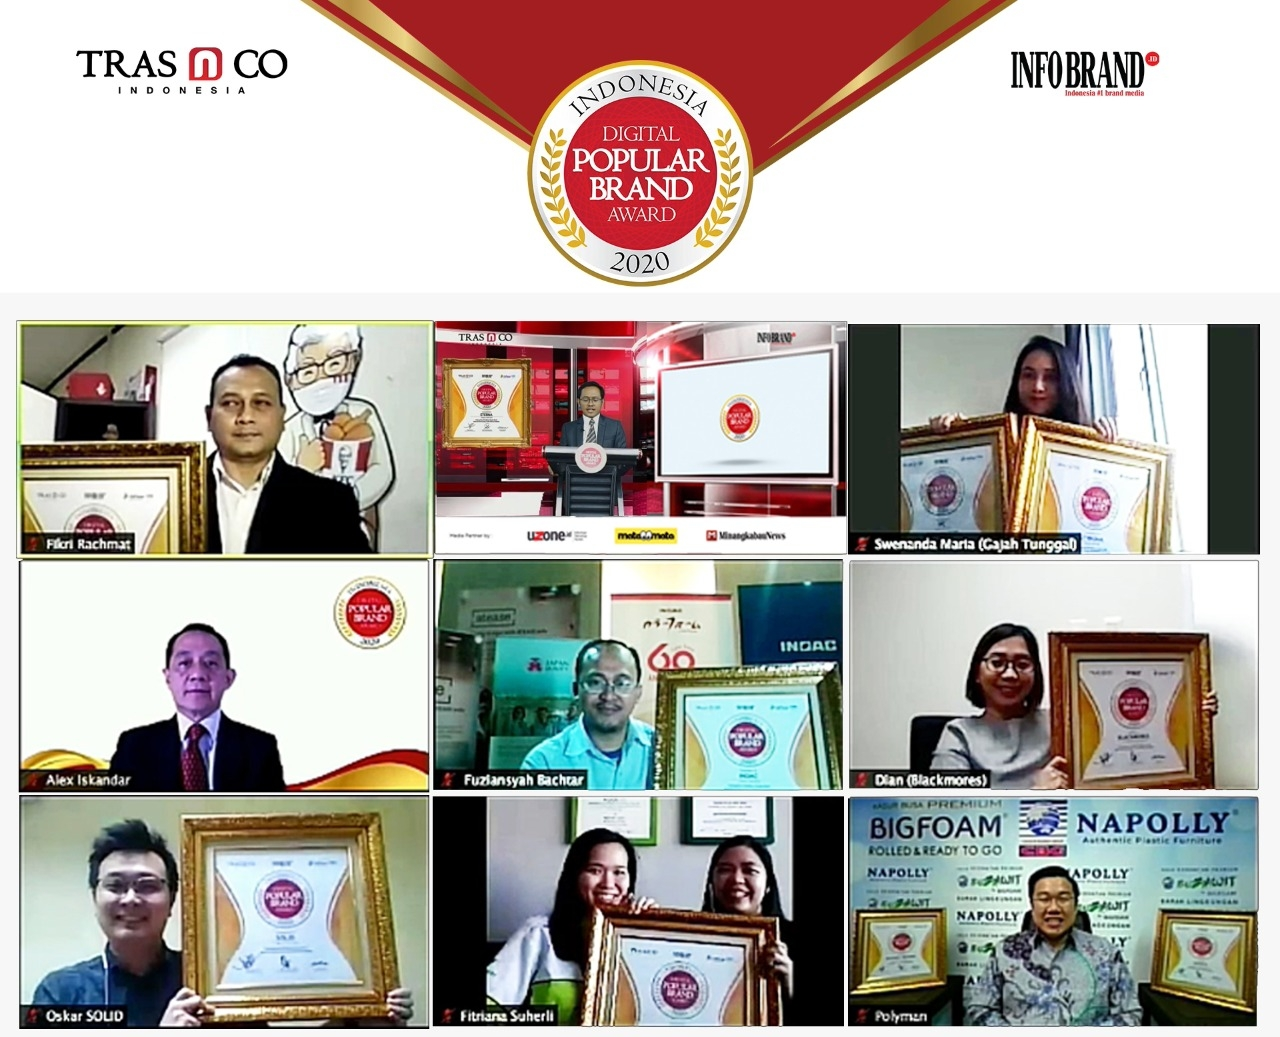 Merek-merek Jawara Indonesia Digital Popular Brand Award 2020 di Era New Normal